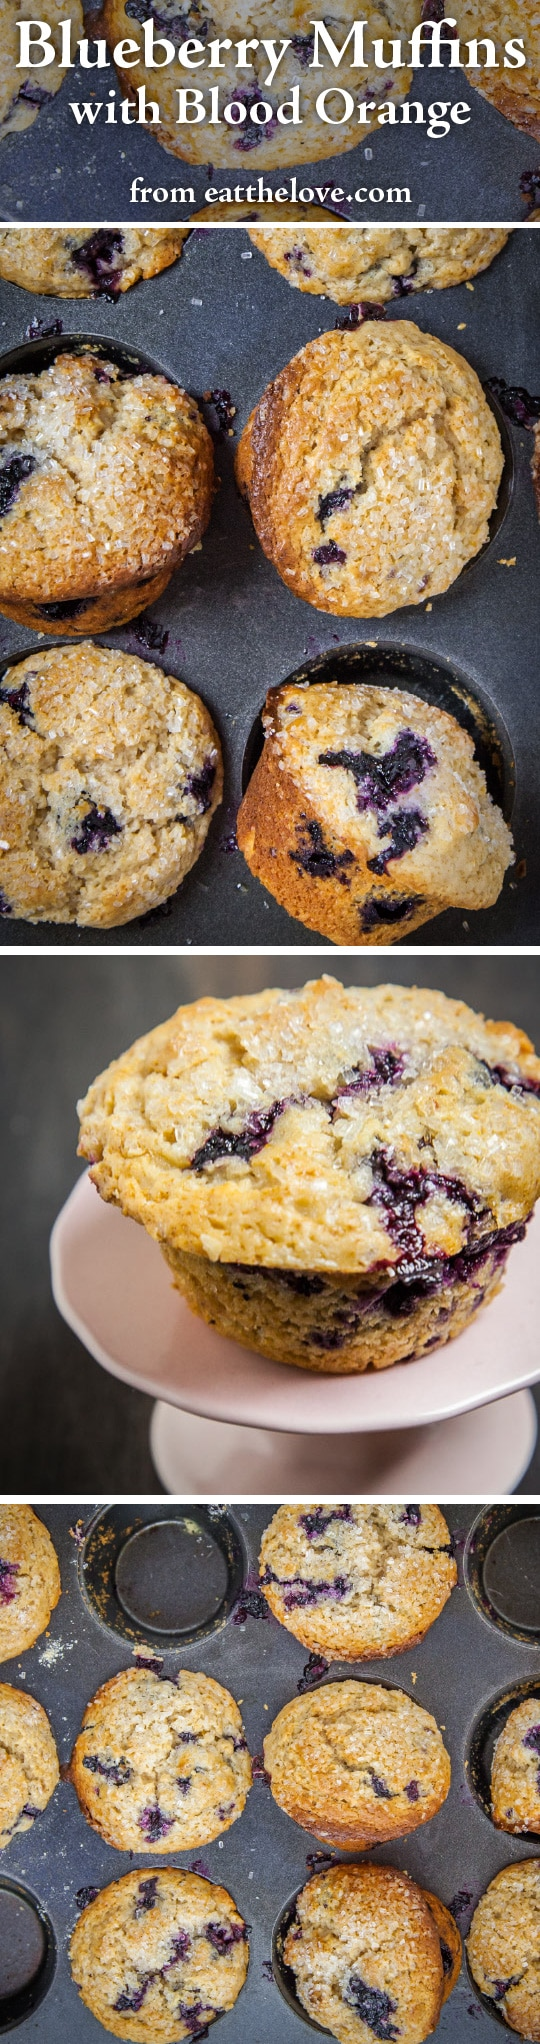 Blueberry Muffins Recipe | Homemade Blueberry Muffins ...